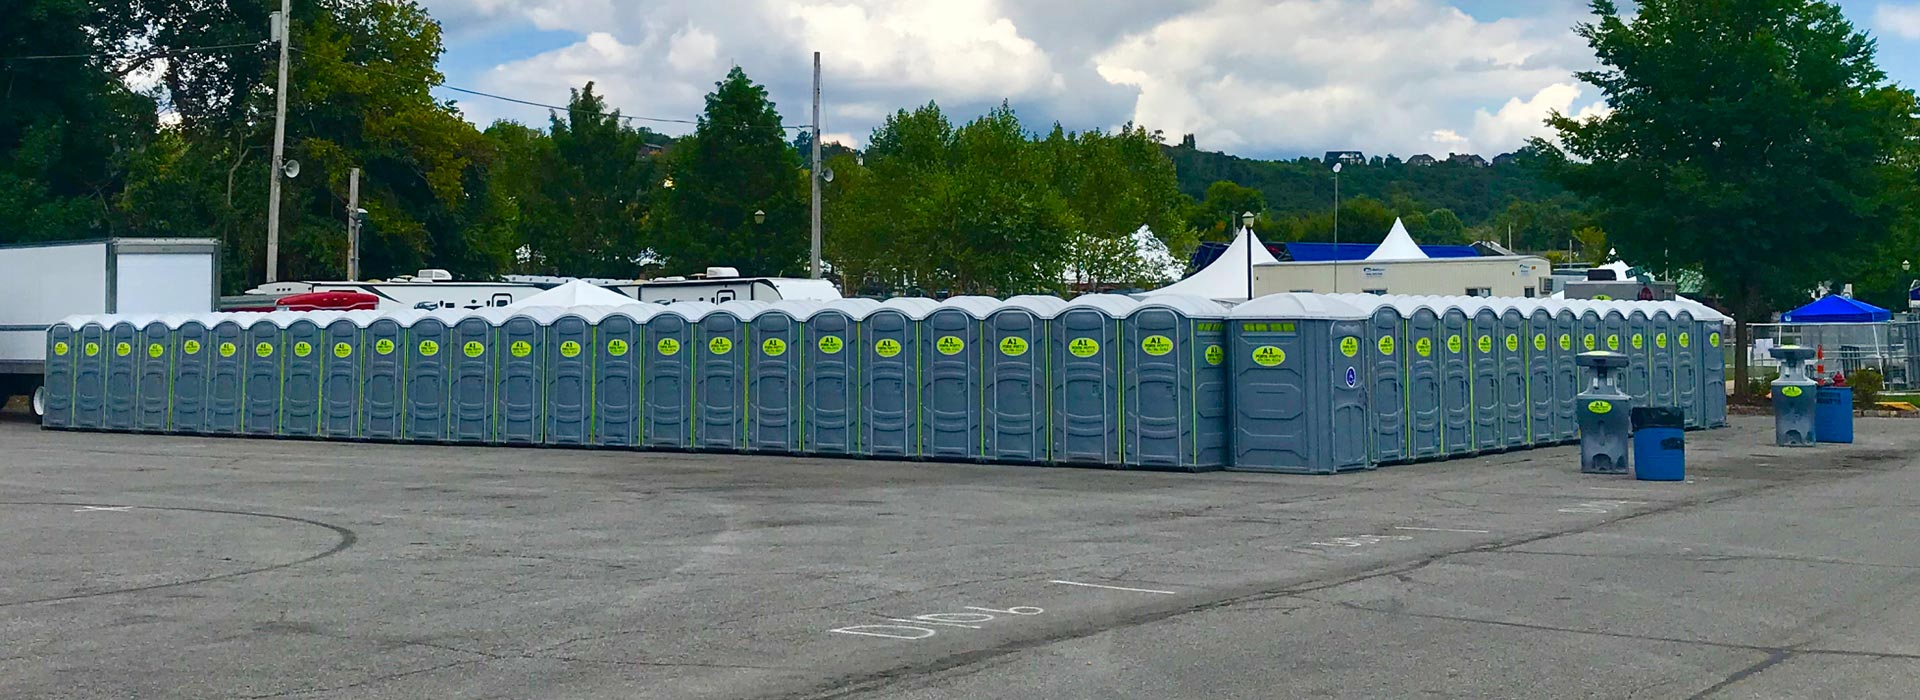 festival porta potties